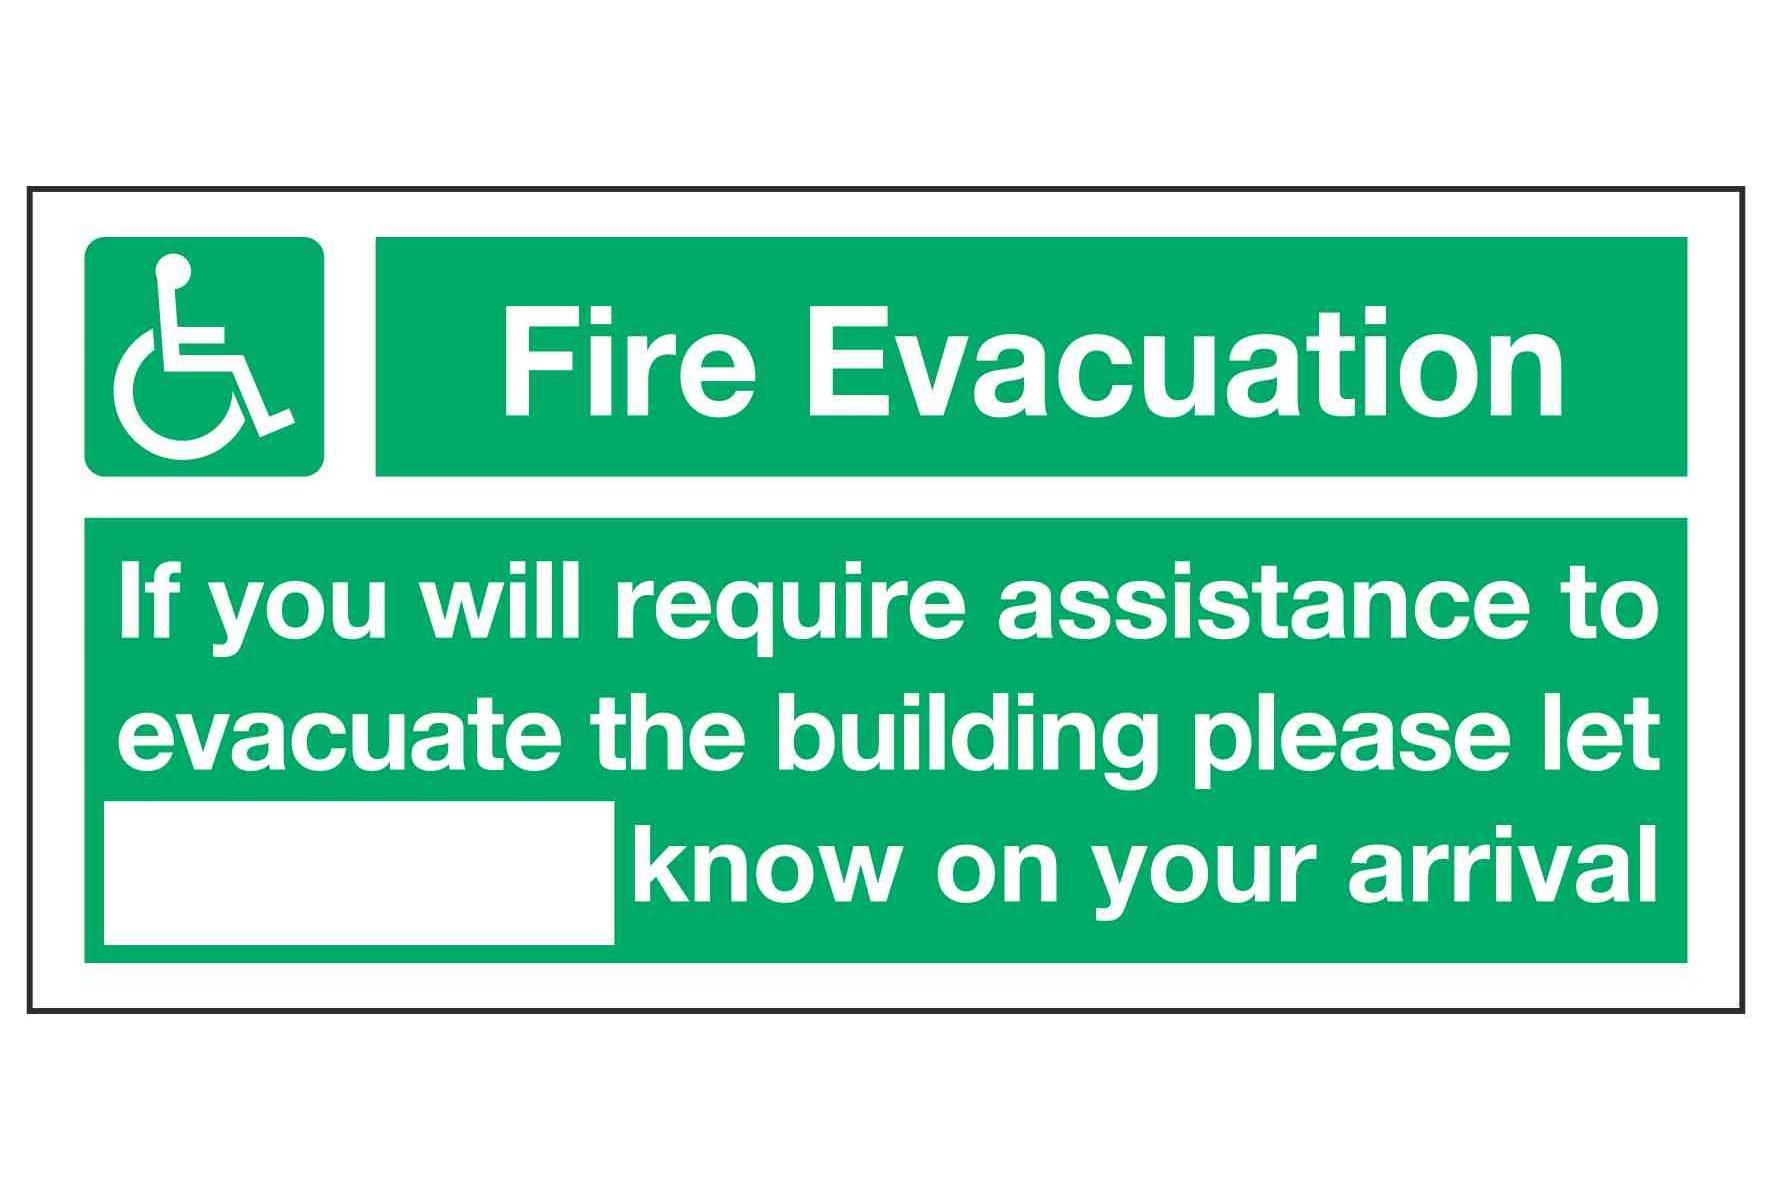 Fire evacuation If you will require assistance to evacuate the building please let - know of your arrival